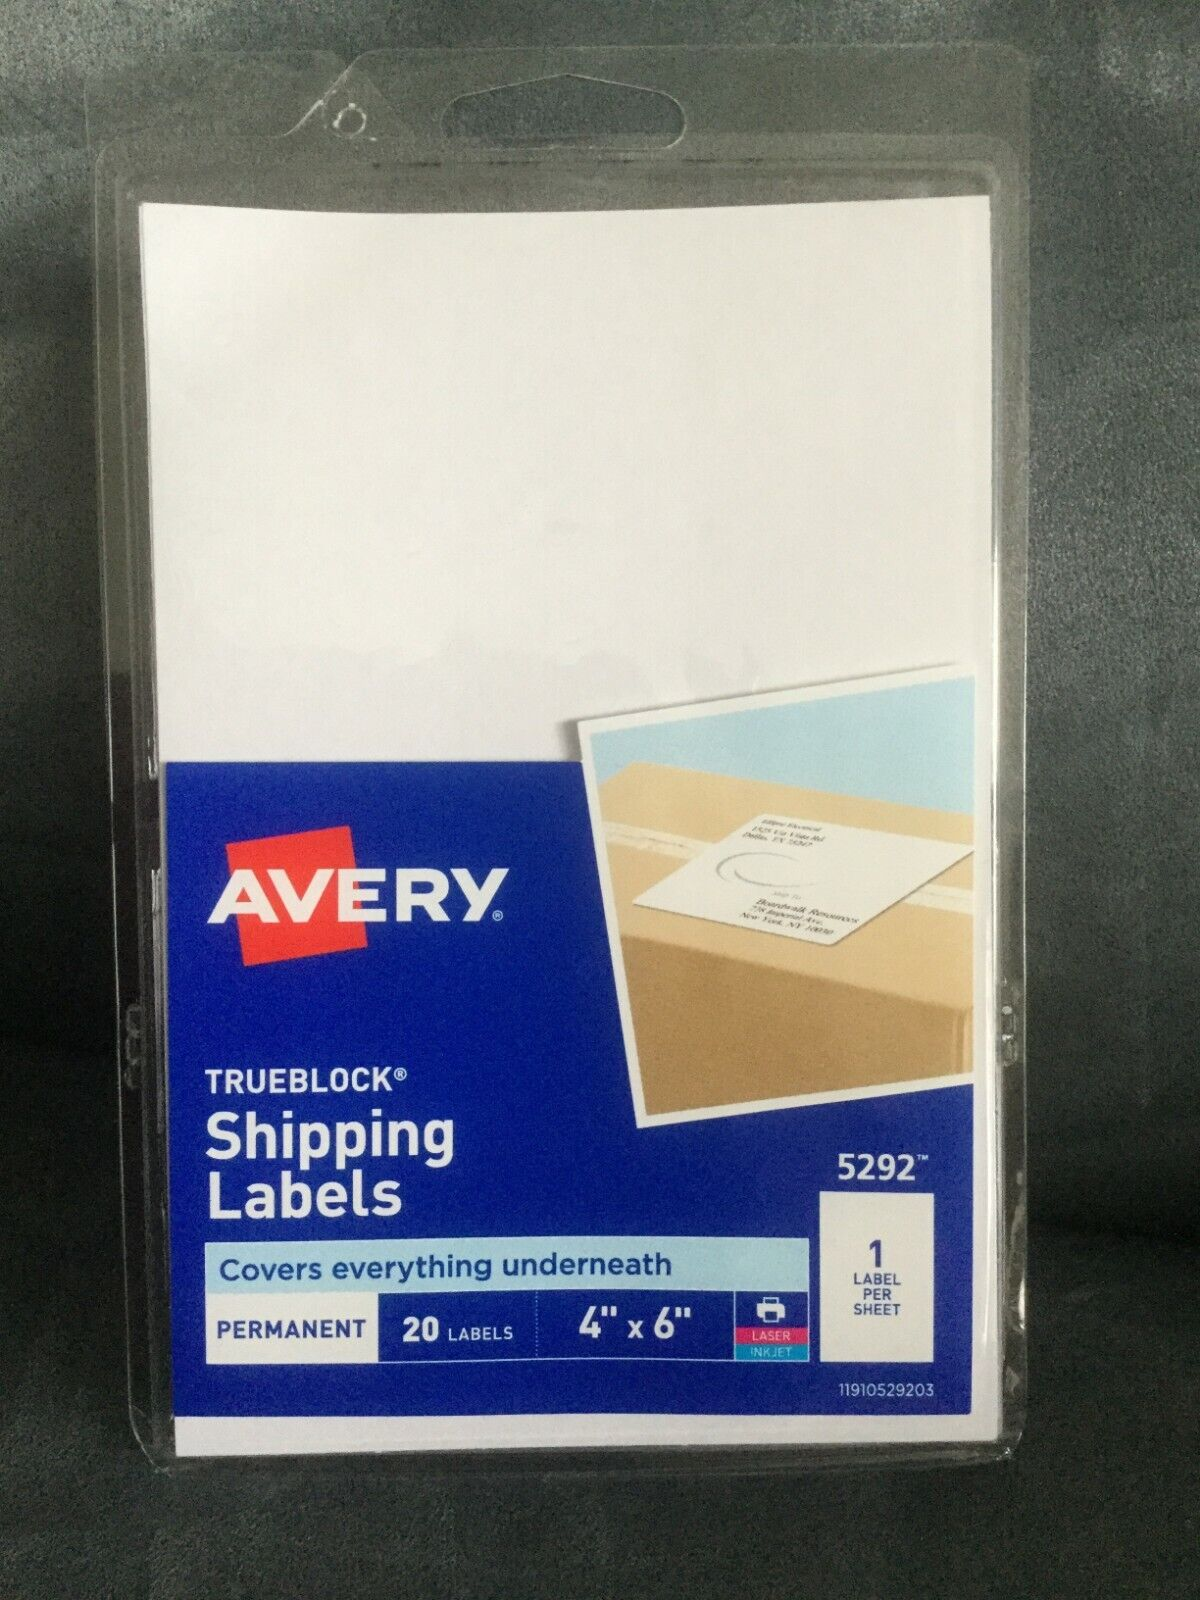 "AVERY #5292 TRUEBLOCK SHIPPING LABELS 20 COUNT 4"" X 6"" FOR L"